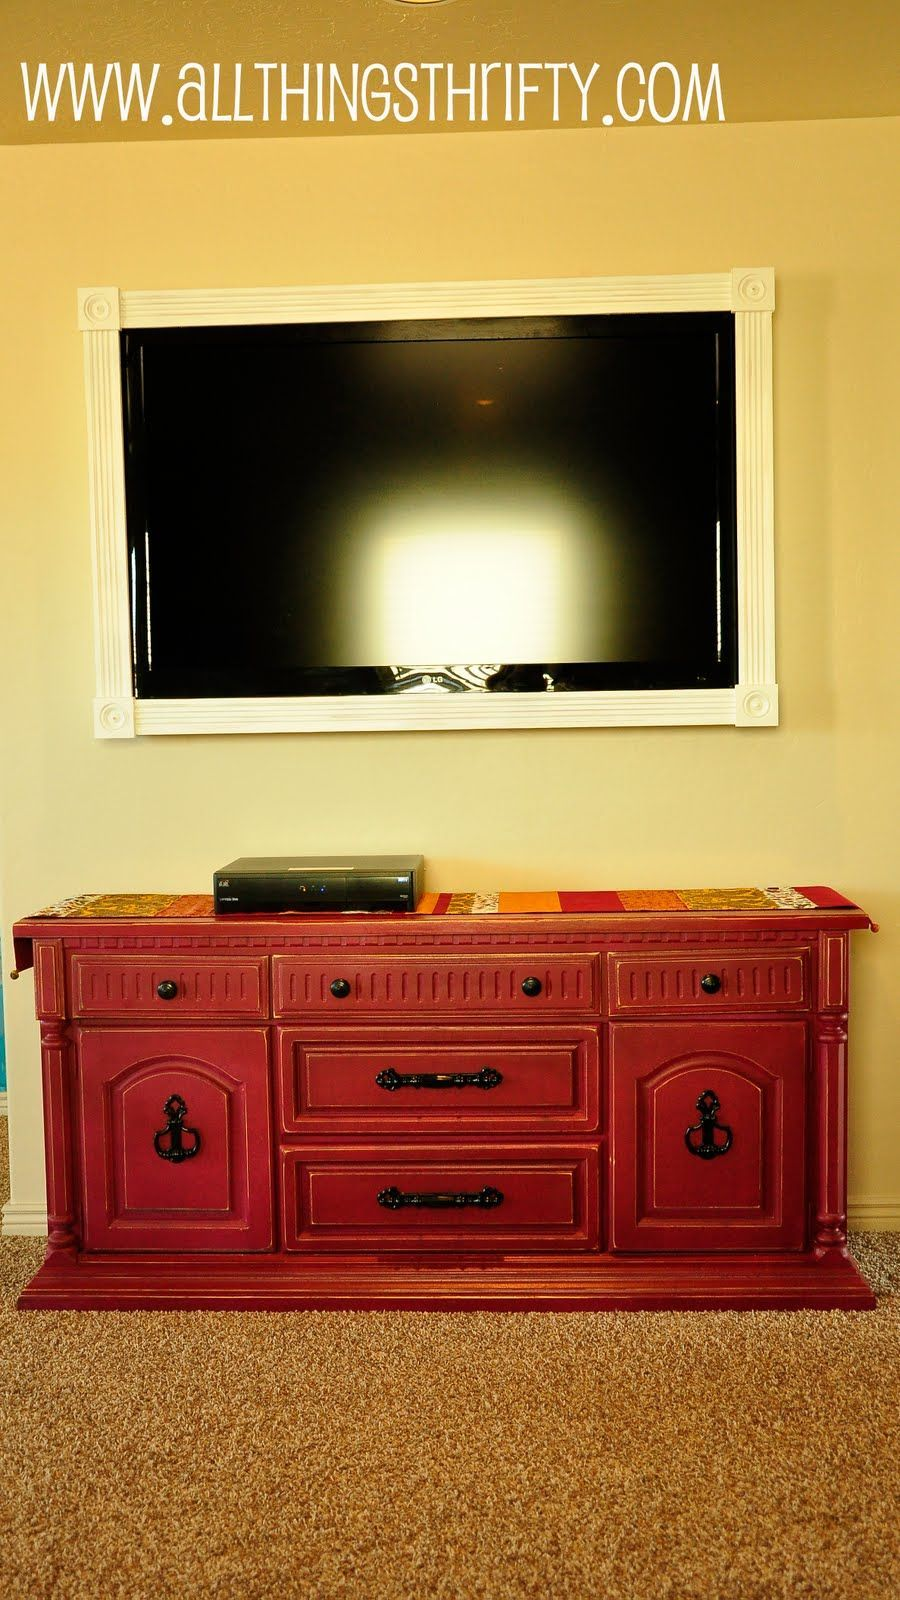 All Things Thrifty Home Accessories and Decor: Cover up ugly LCD TV ...